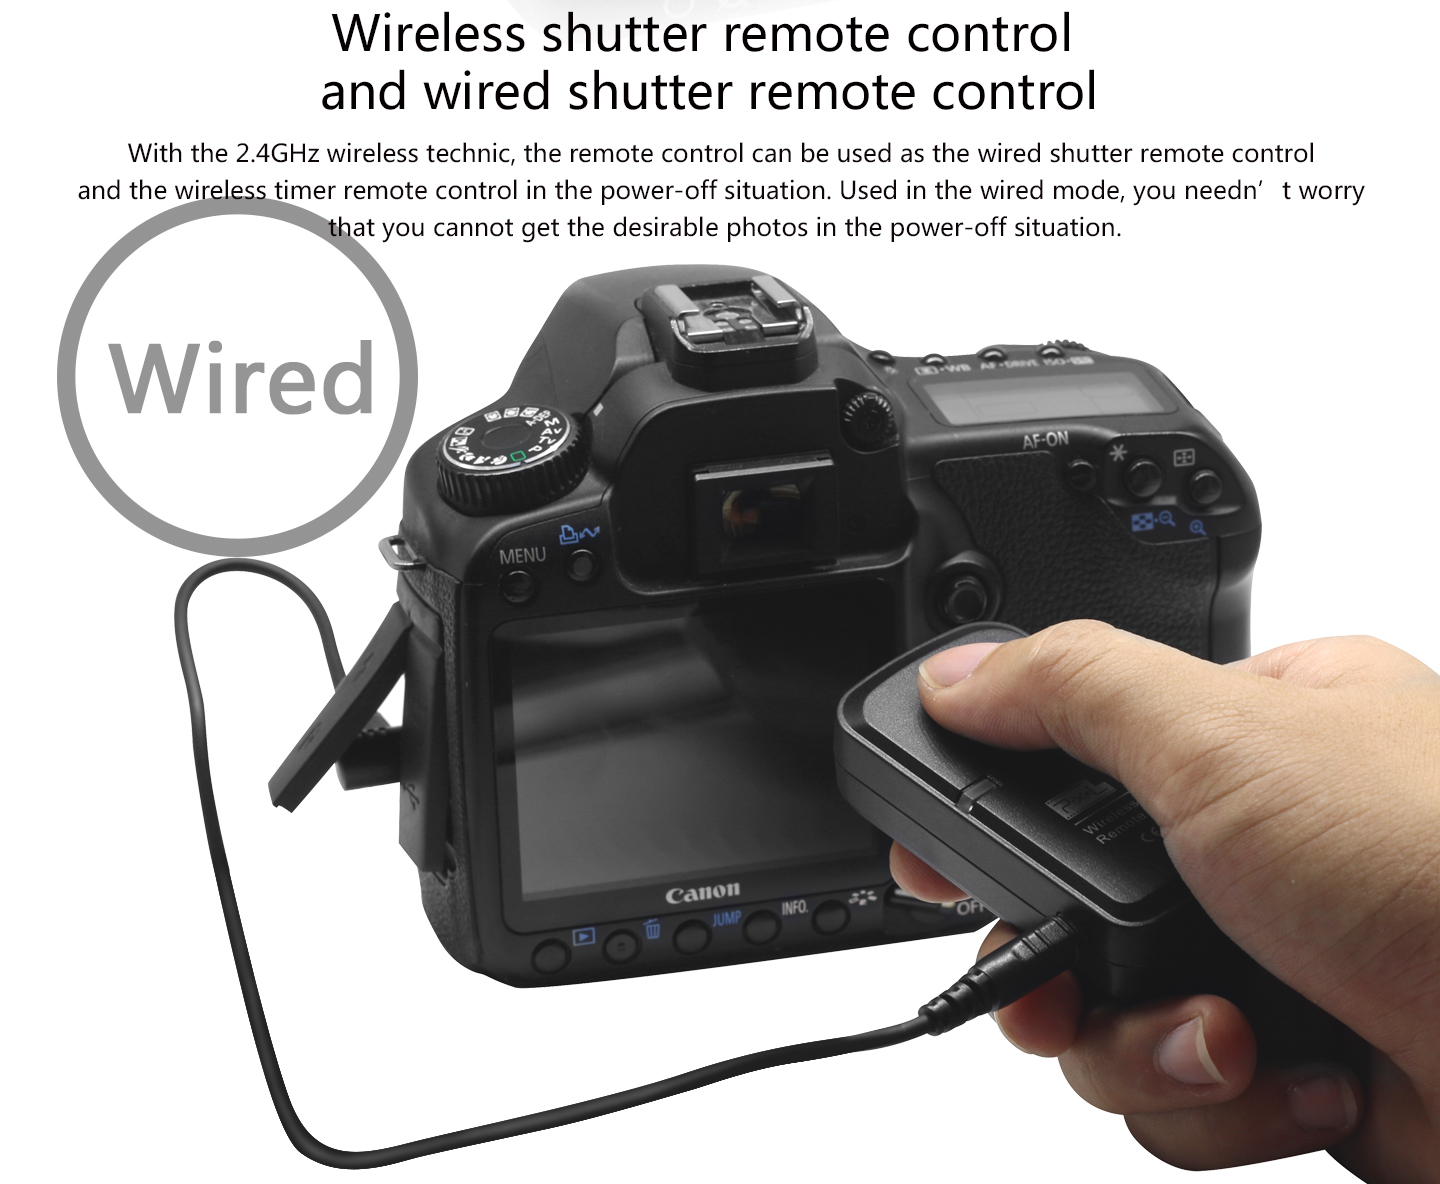 Wireless shutter remote control and wired shutter remote control